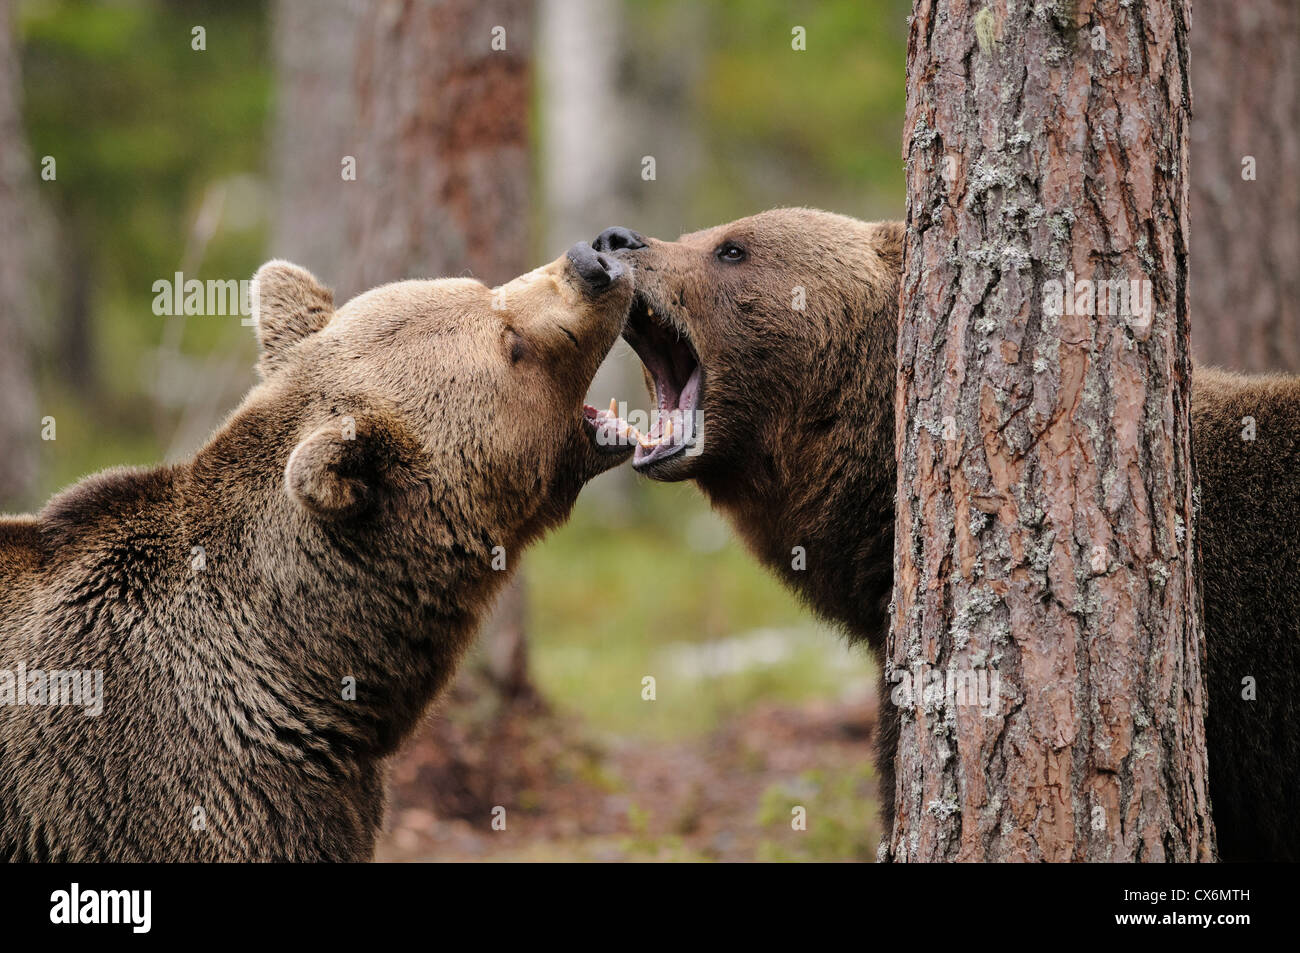 Play fighting brown bears in a forest in Finland - Stock Image